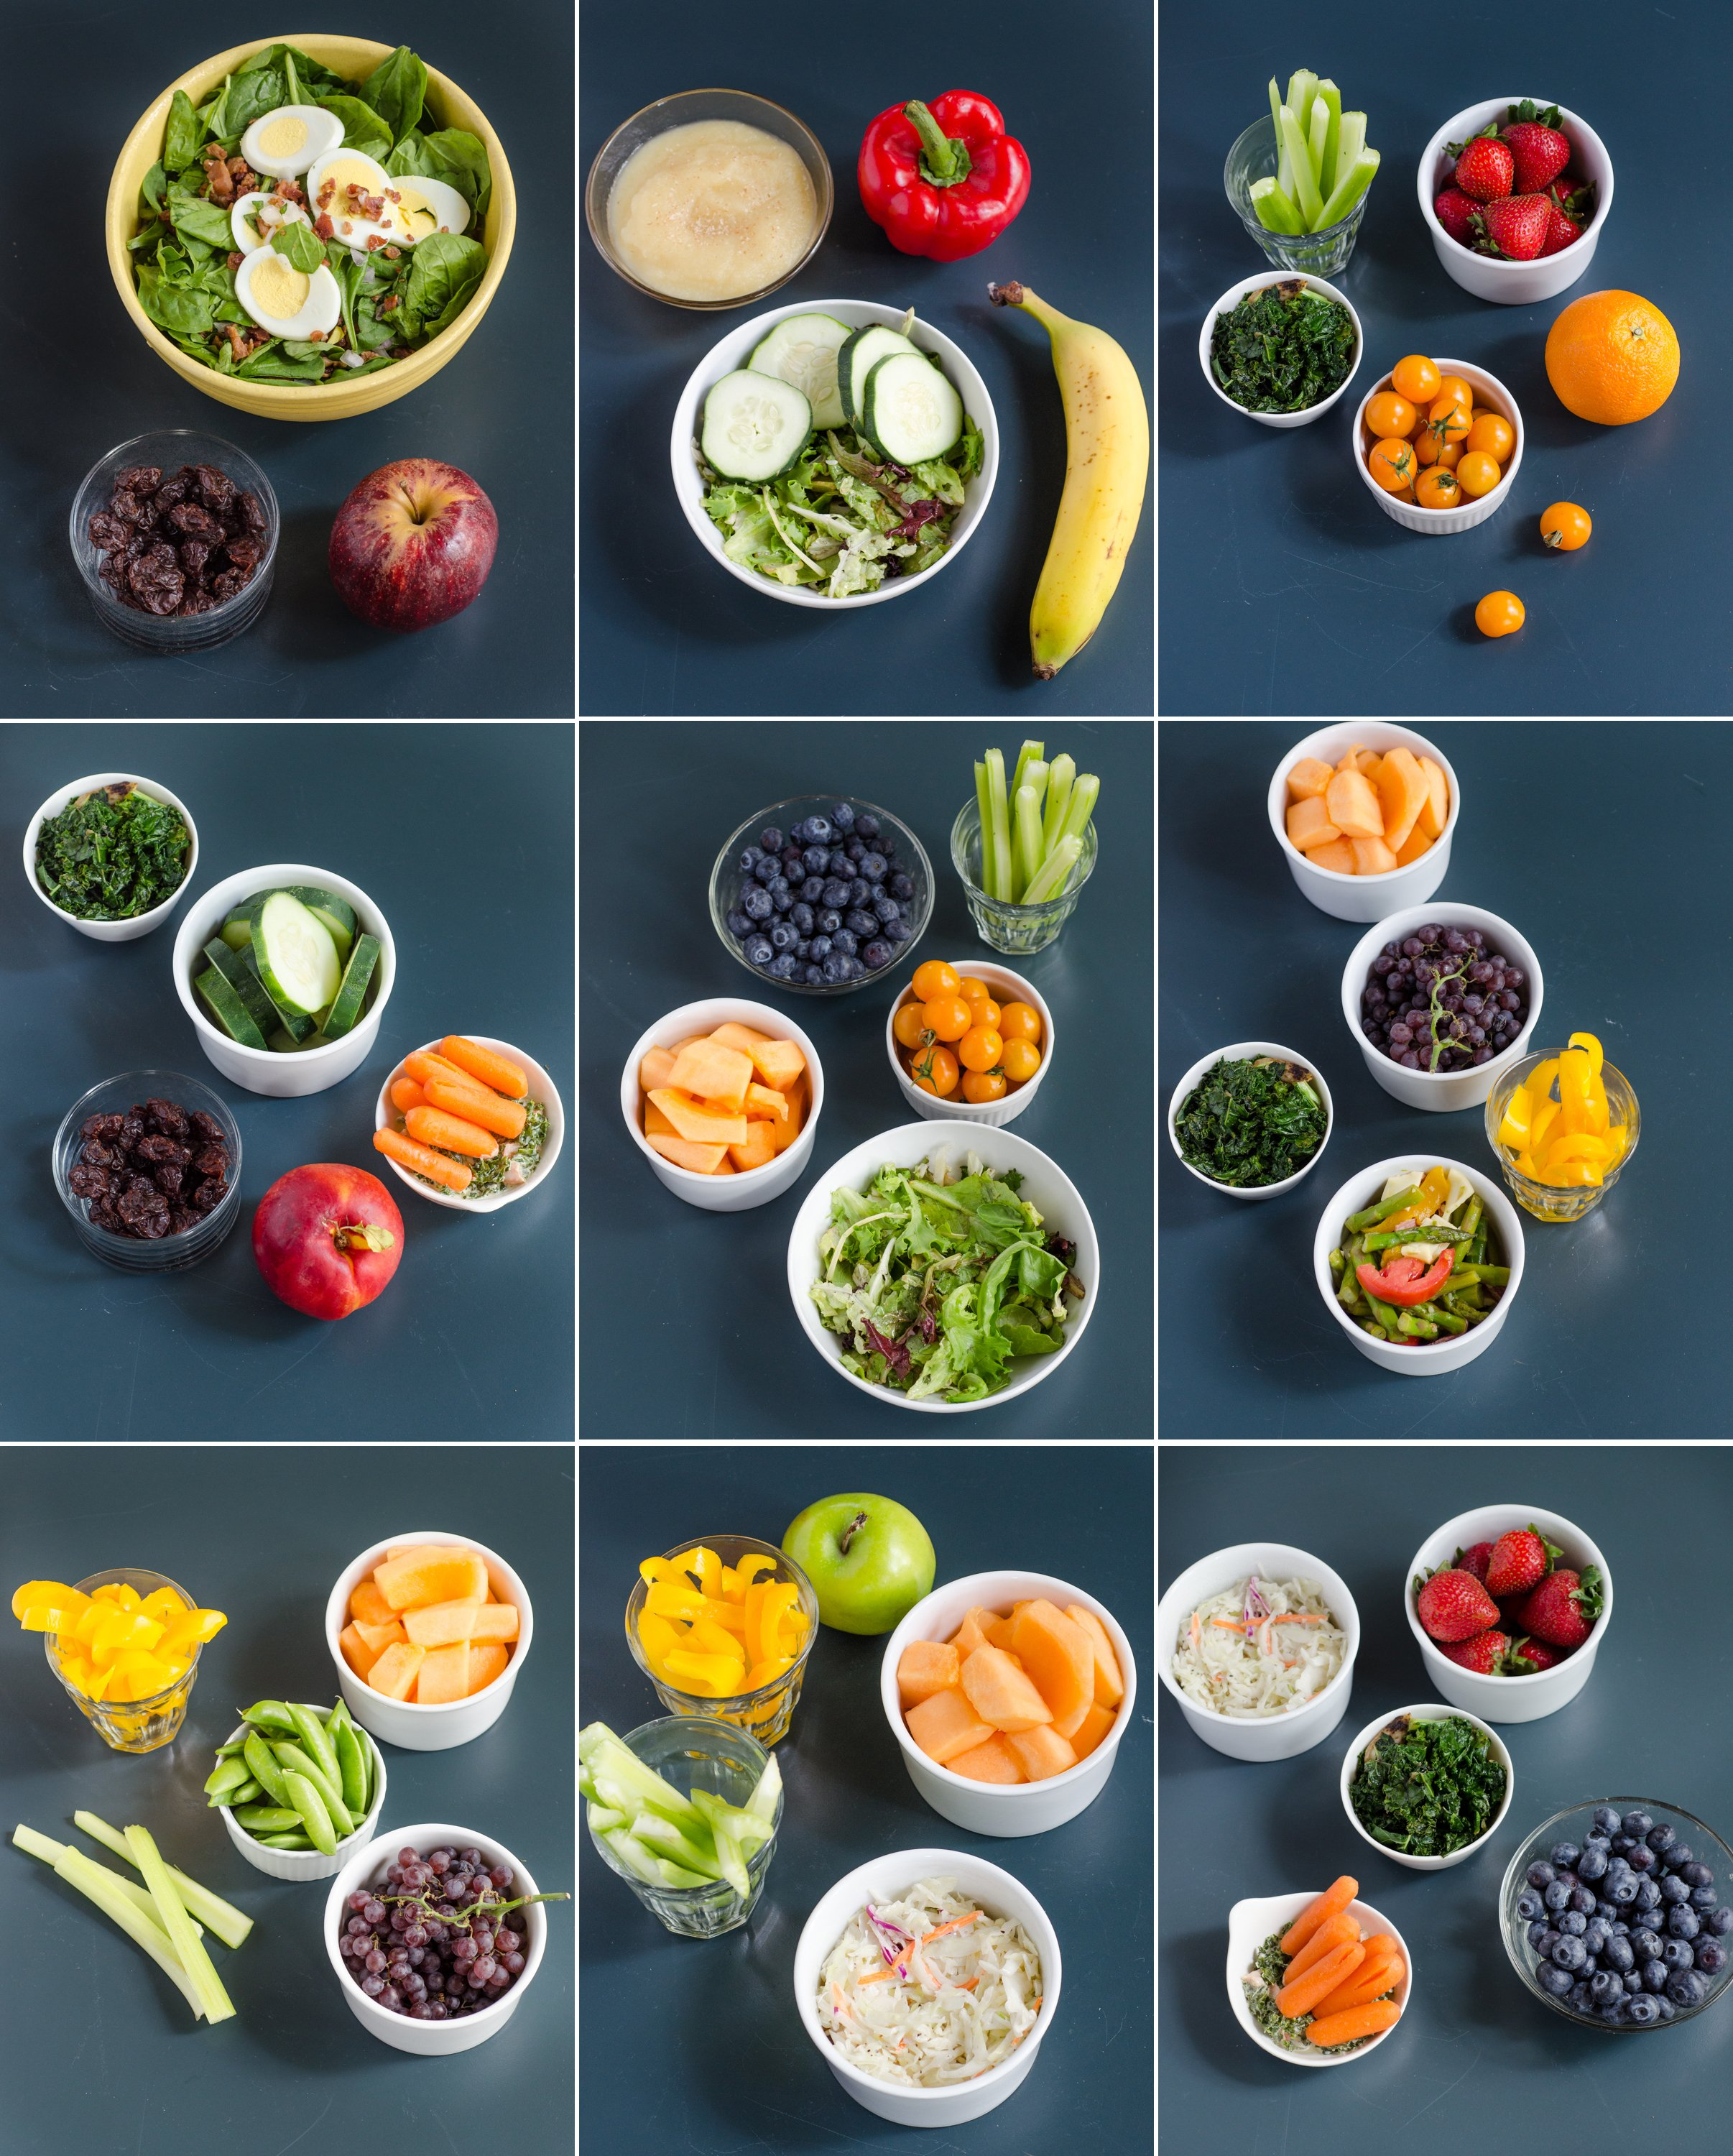 Here Are 10 Pictures of Your Daily Recommended Servings of Fruits & Vegetables | Kitchn